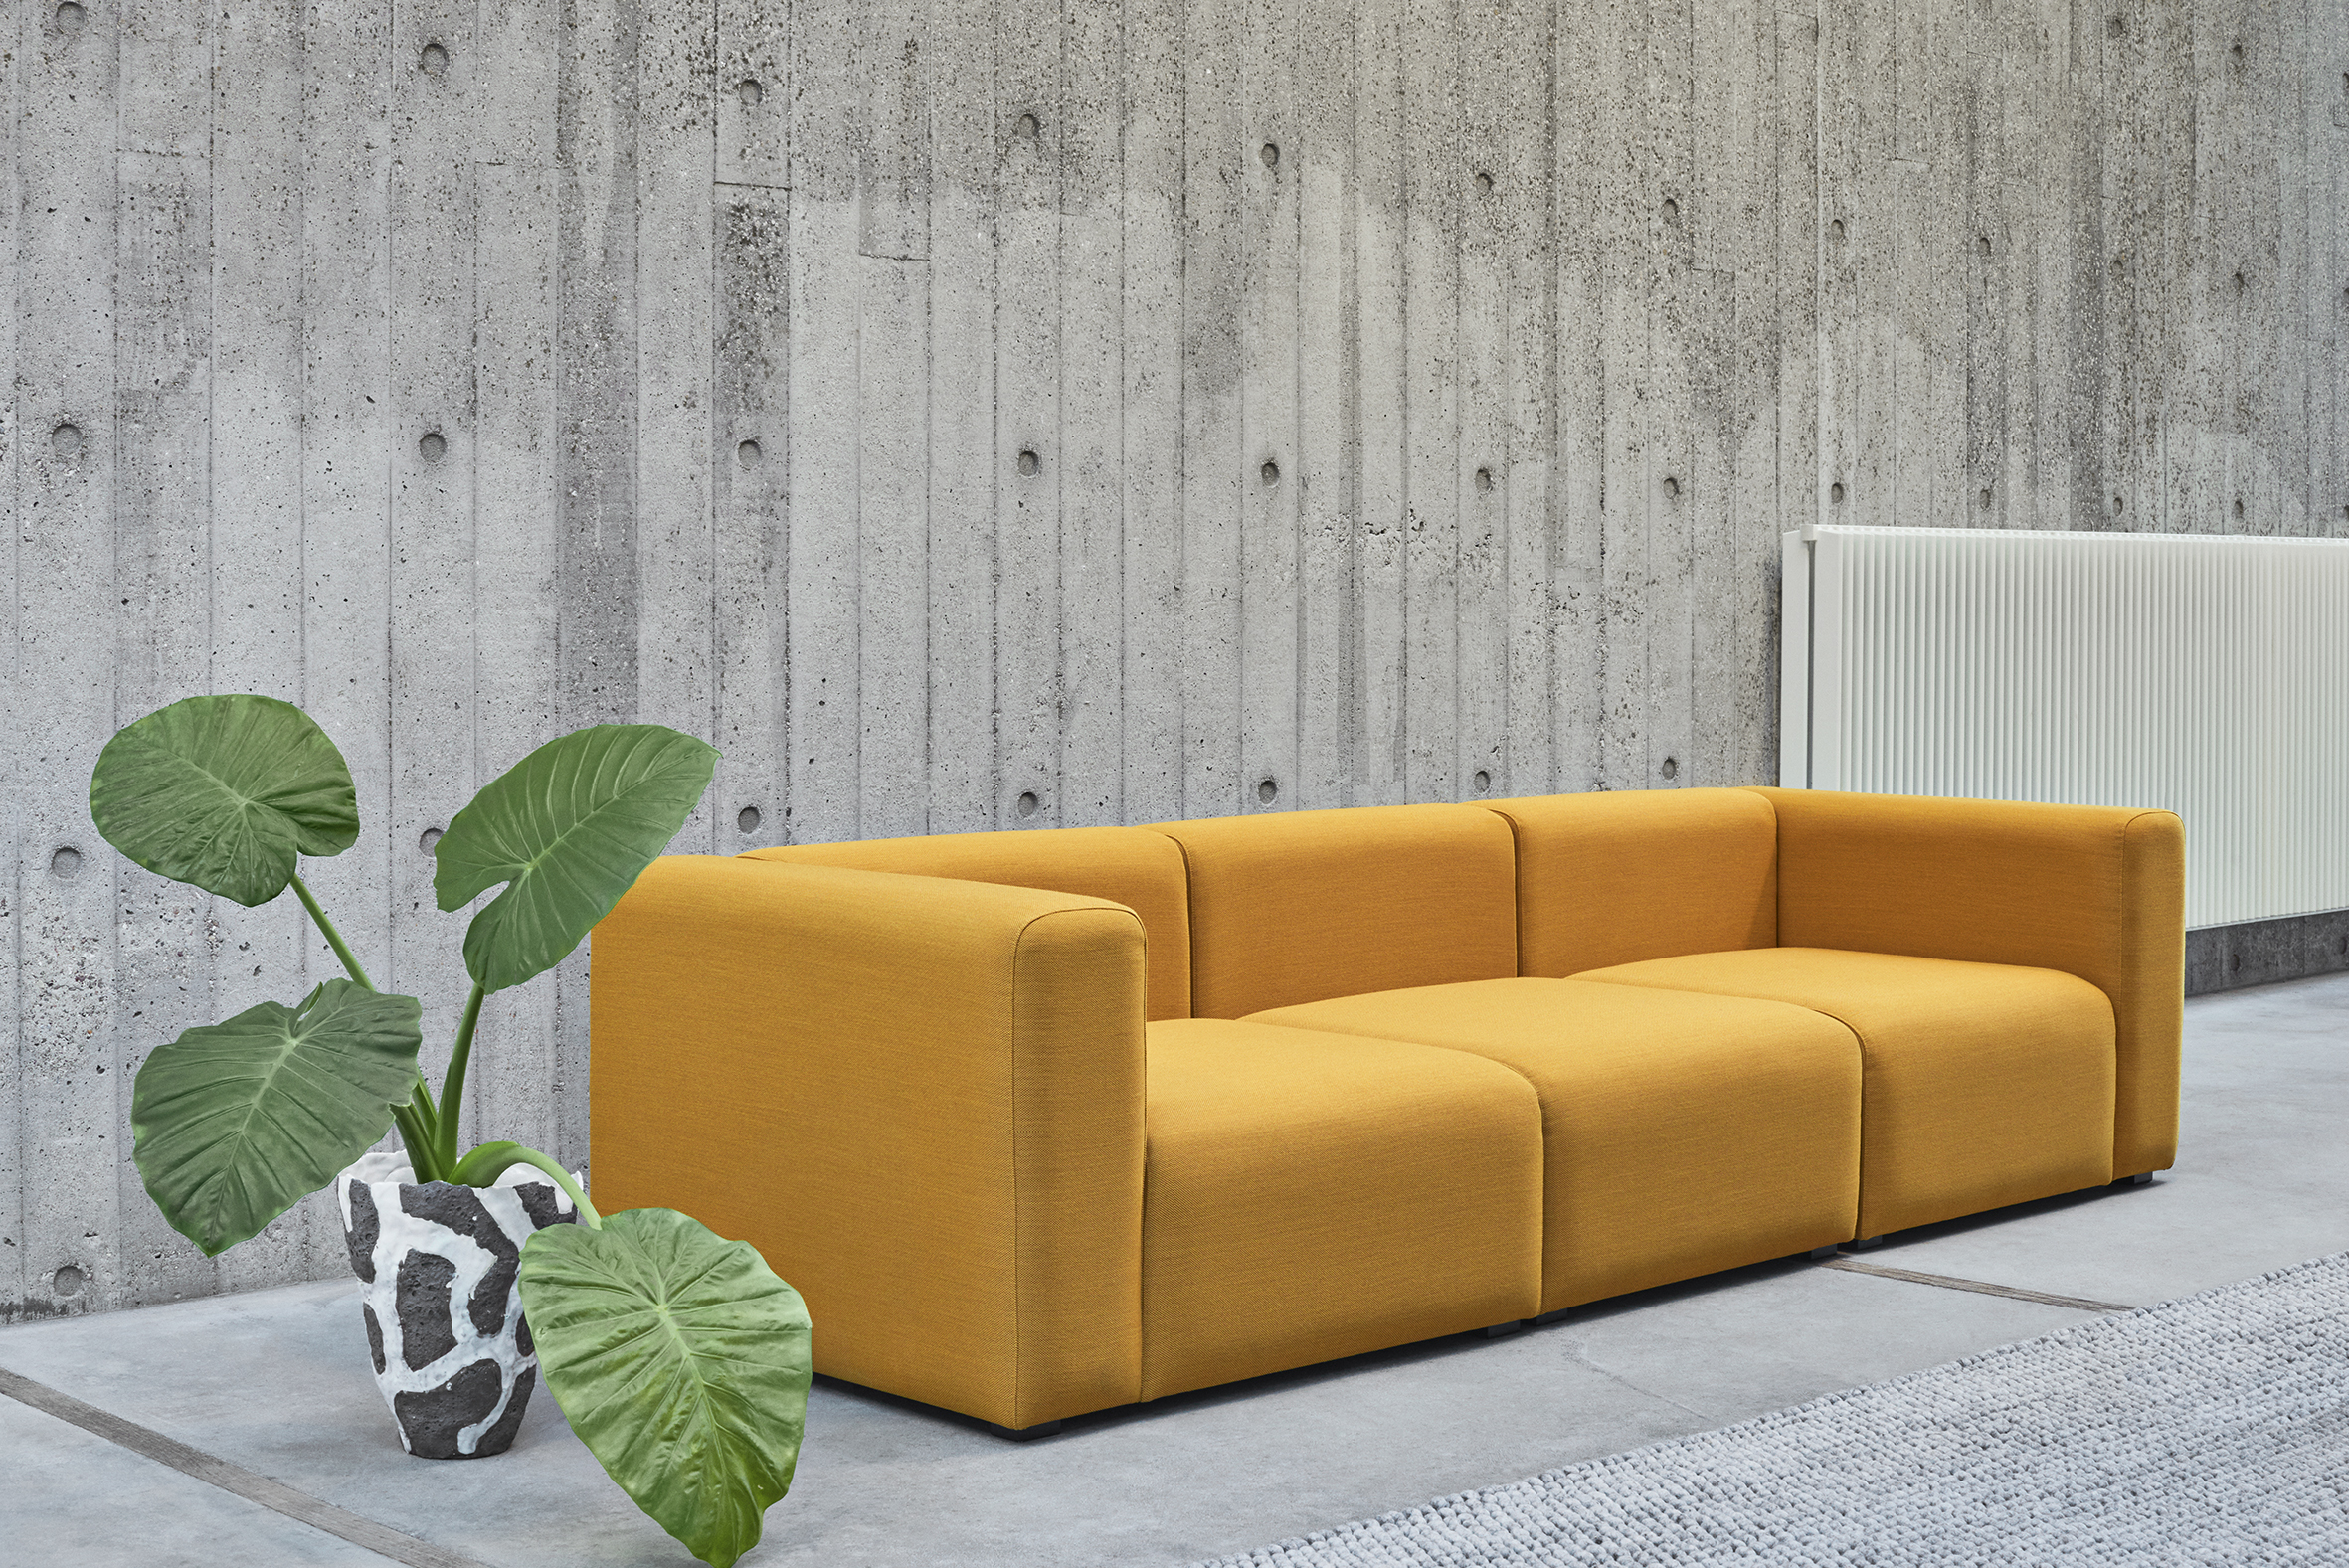 hay mags soft sofa bank come bed by stylepark